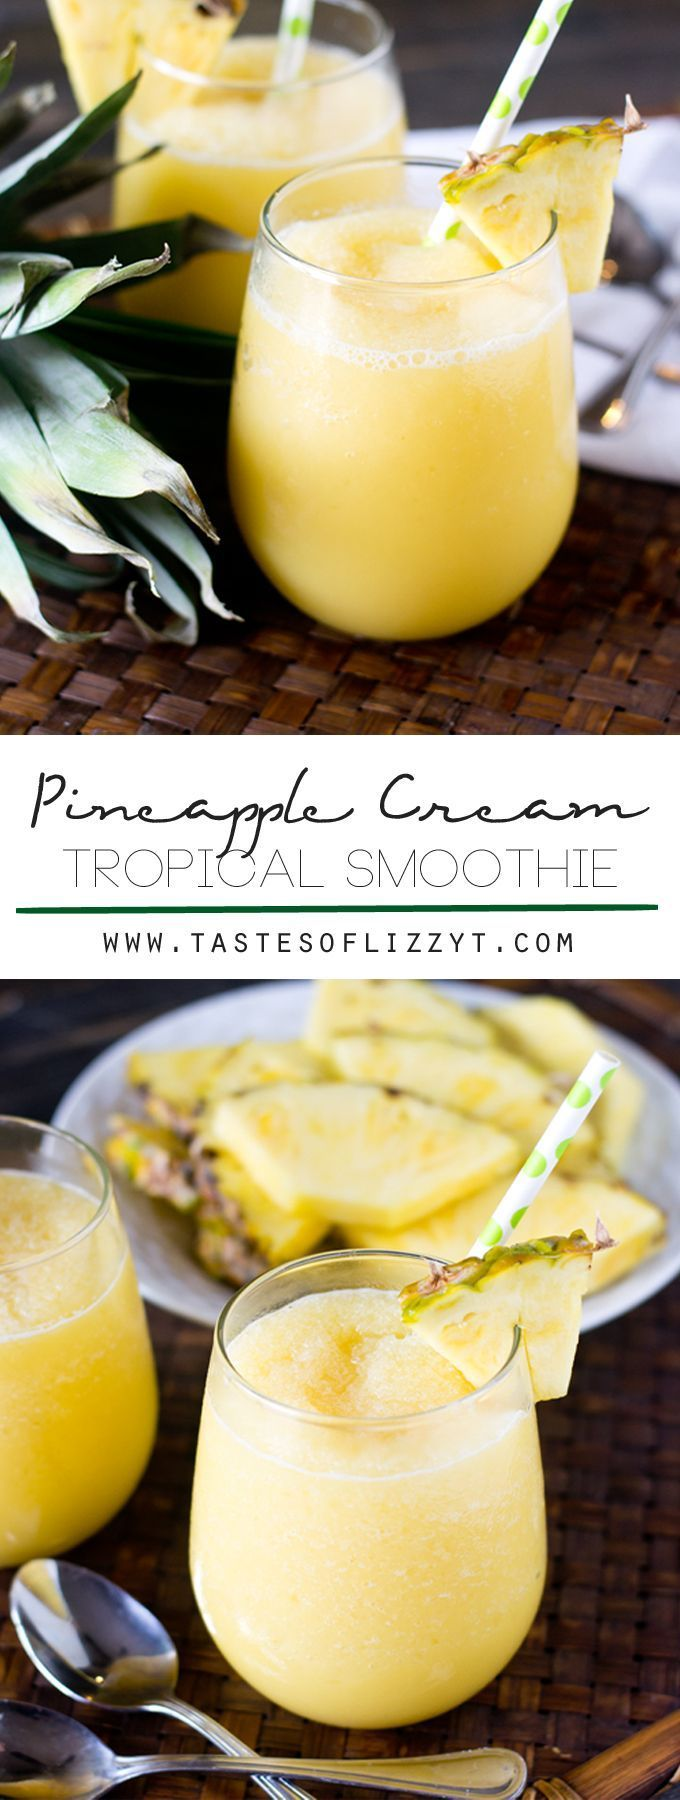 Pineapple Cream Tropical Smoothie Recipe - Tastes of Lizzy T. Sweet, creamy and tangy, this Pineapple Cream Tropical Smoothie with pineapple and a hint of orange is sure to refresh you on a hot summer day. It's dairy free and has no added sugar! #KingOfJuices #ad